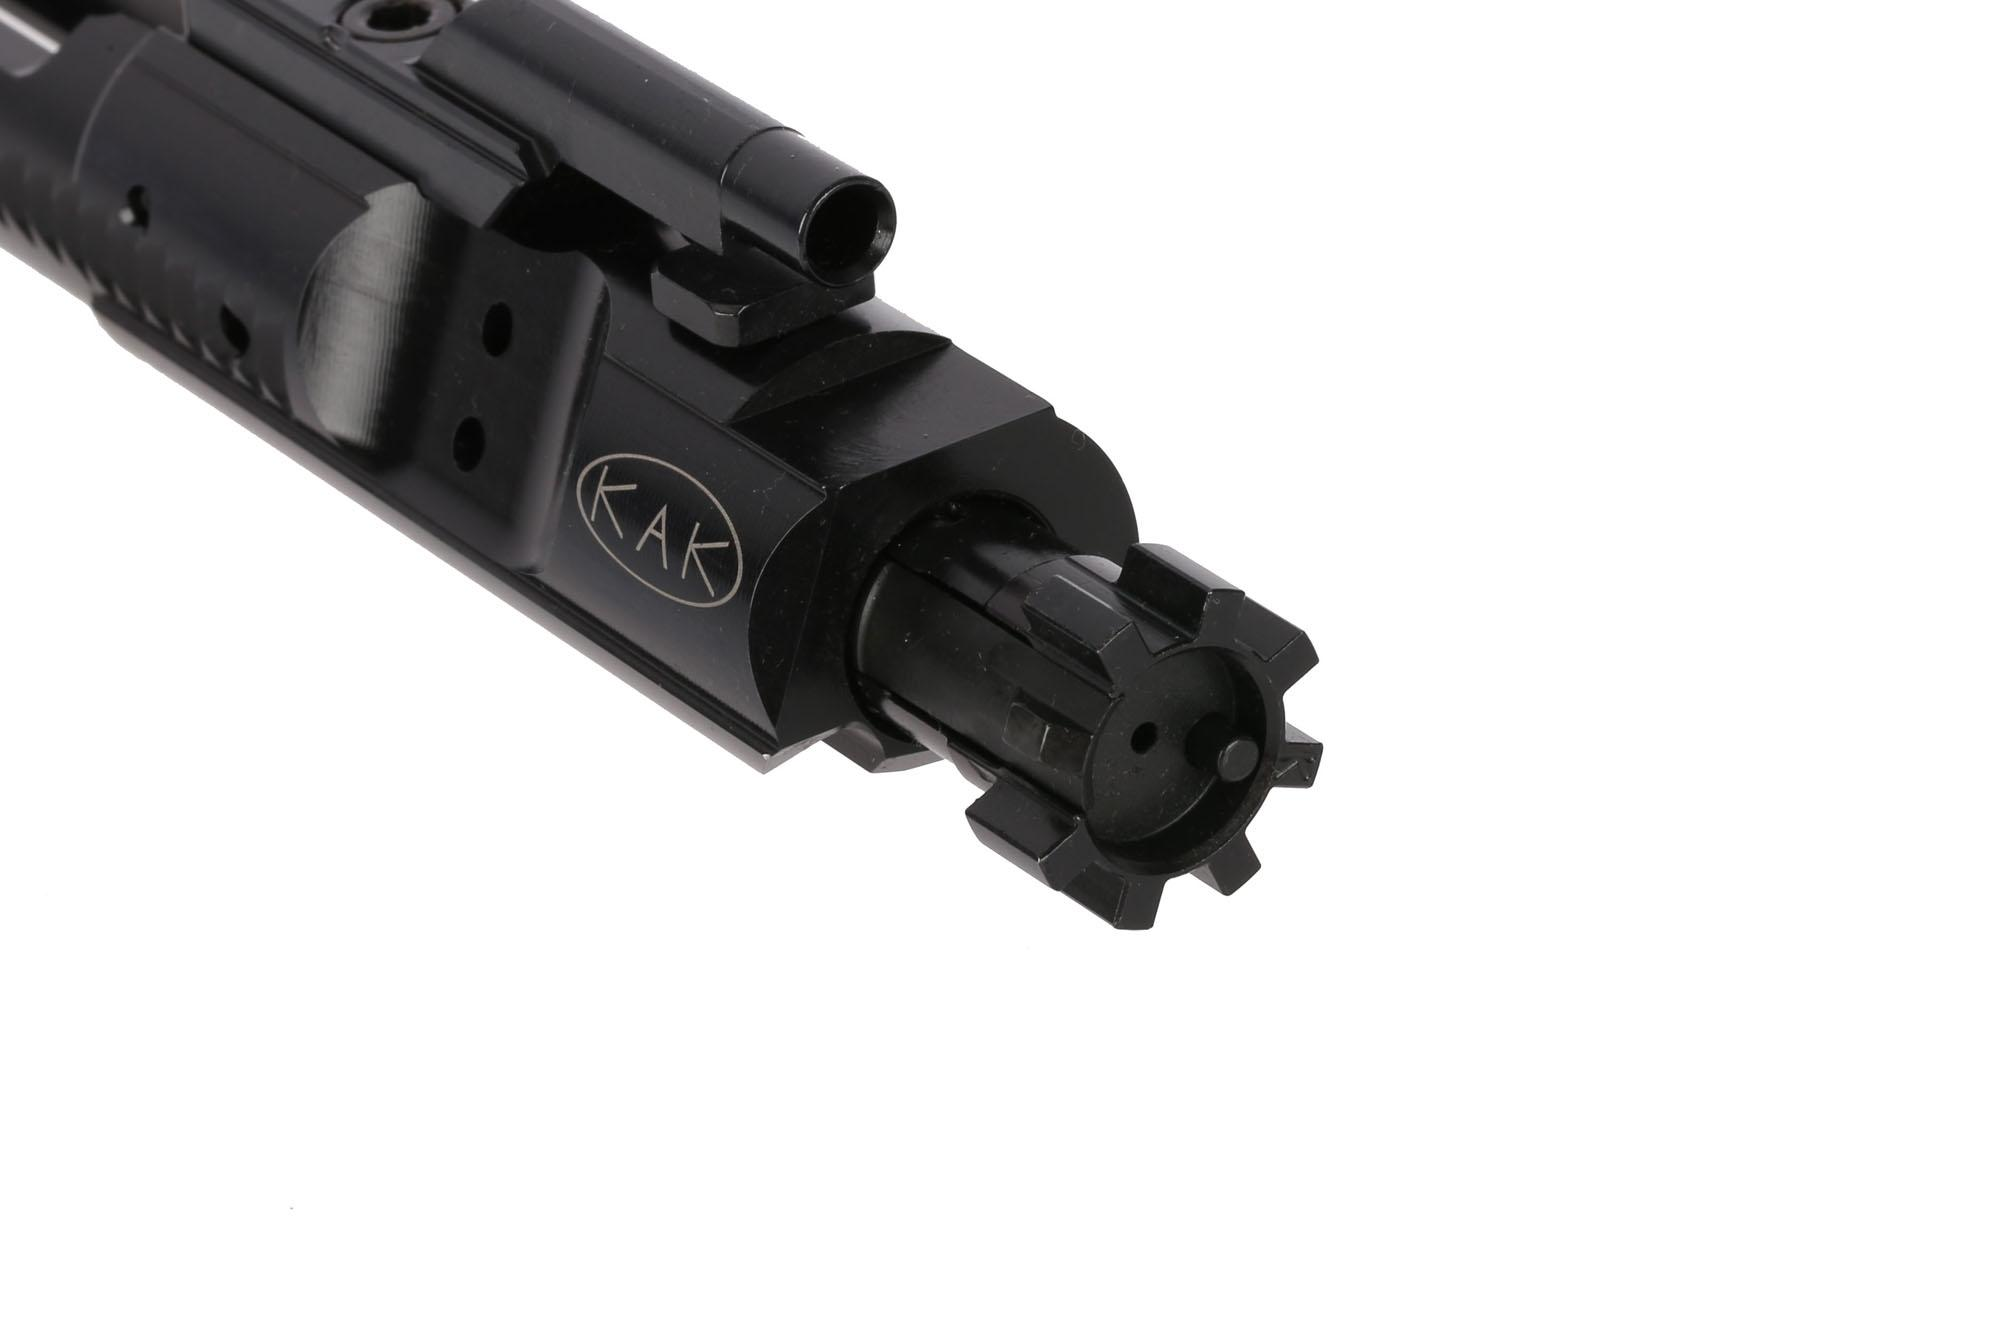 KAK Industry AUTO 7.62x39 Bolt Carrier Group